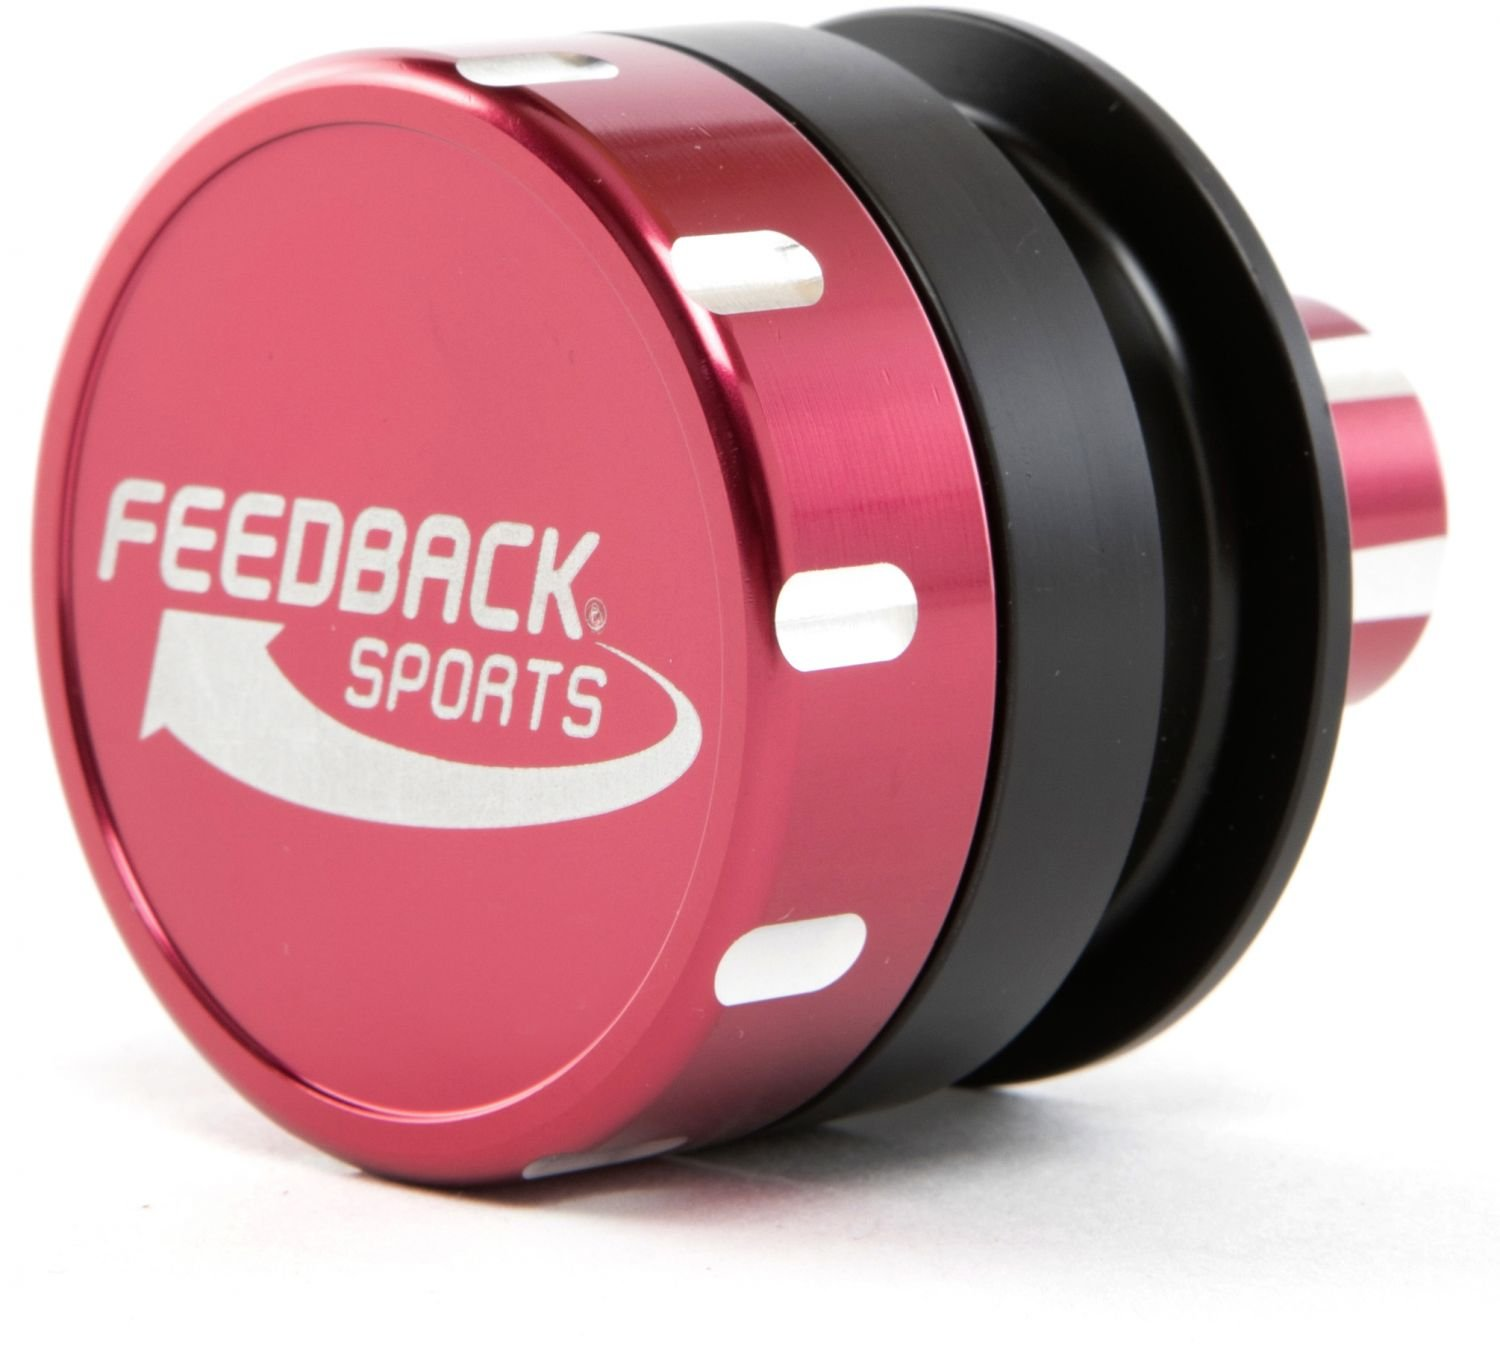 Feedback Sports Chain Keeper